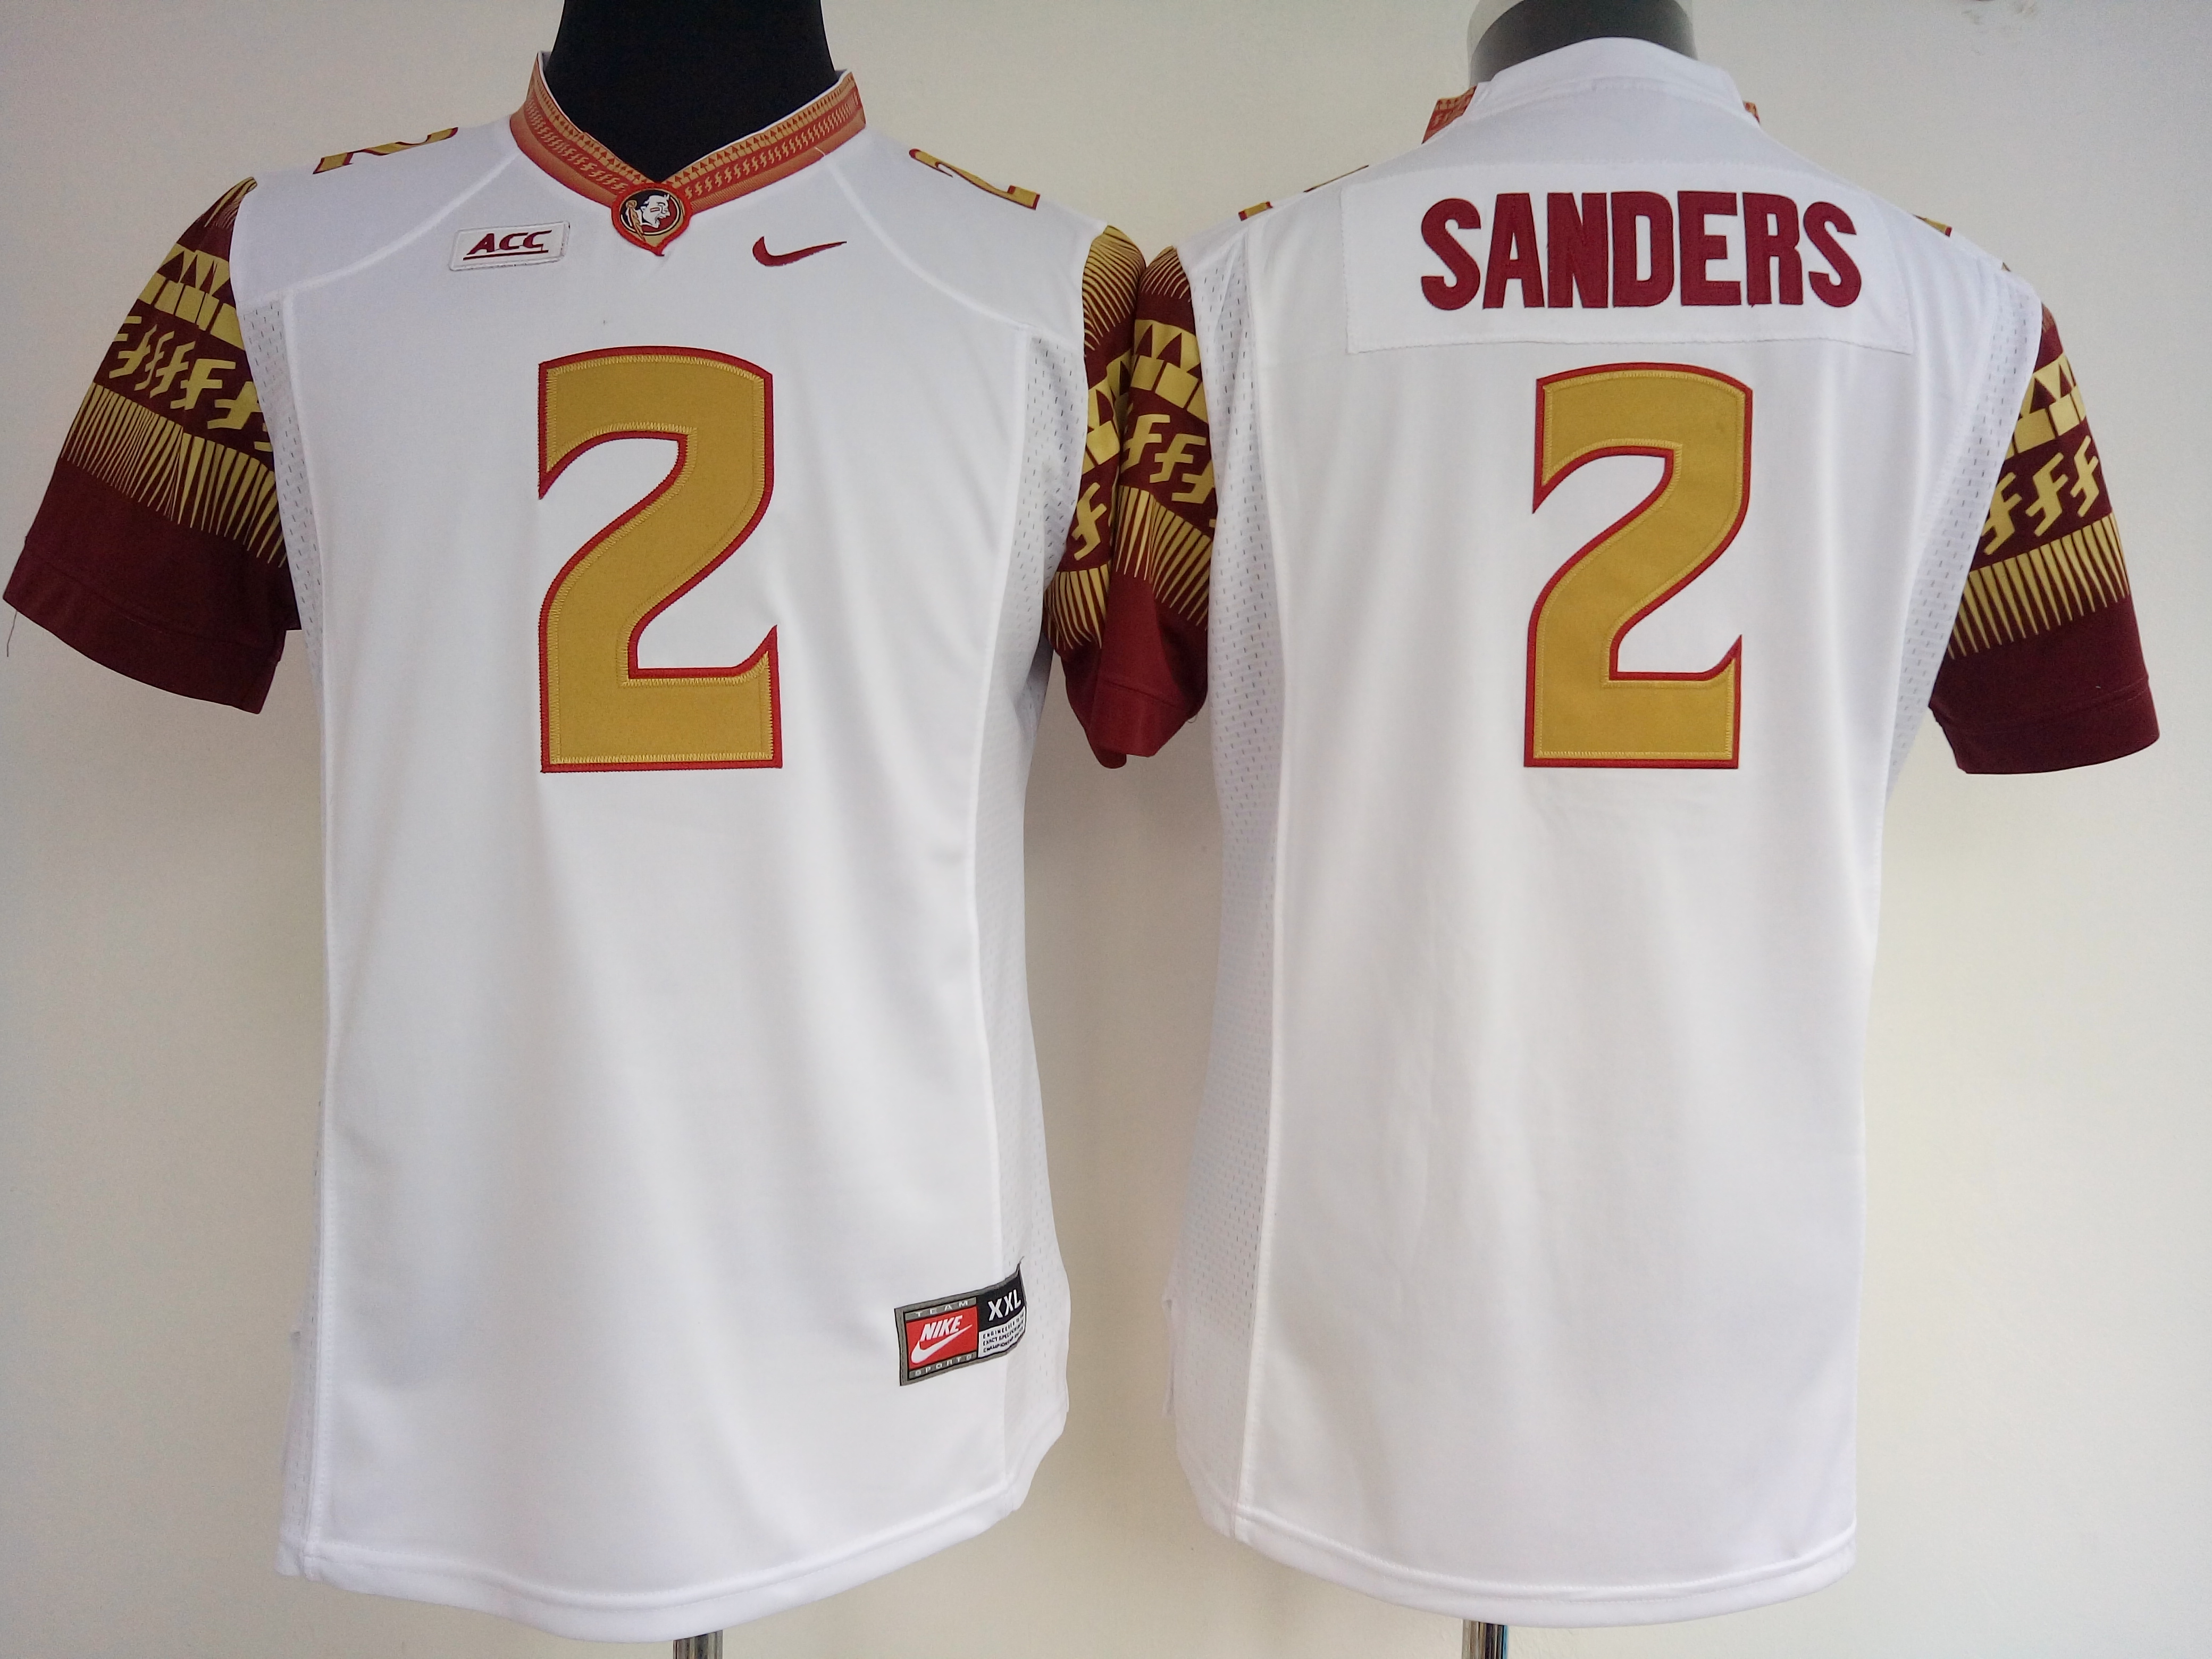 NCAA Womens Florida State Seminoles White 2 Sanders jerseys